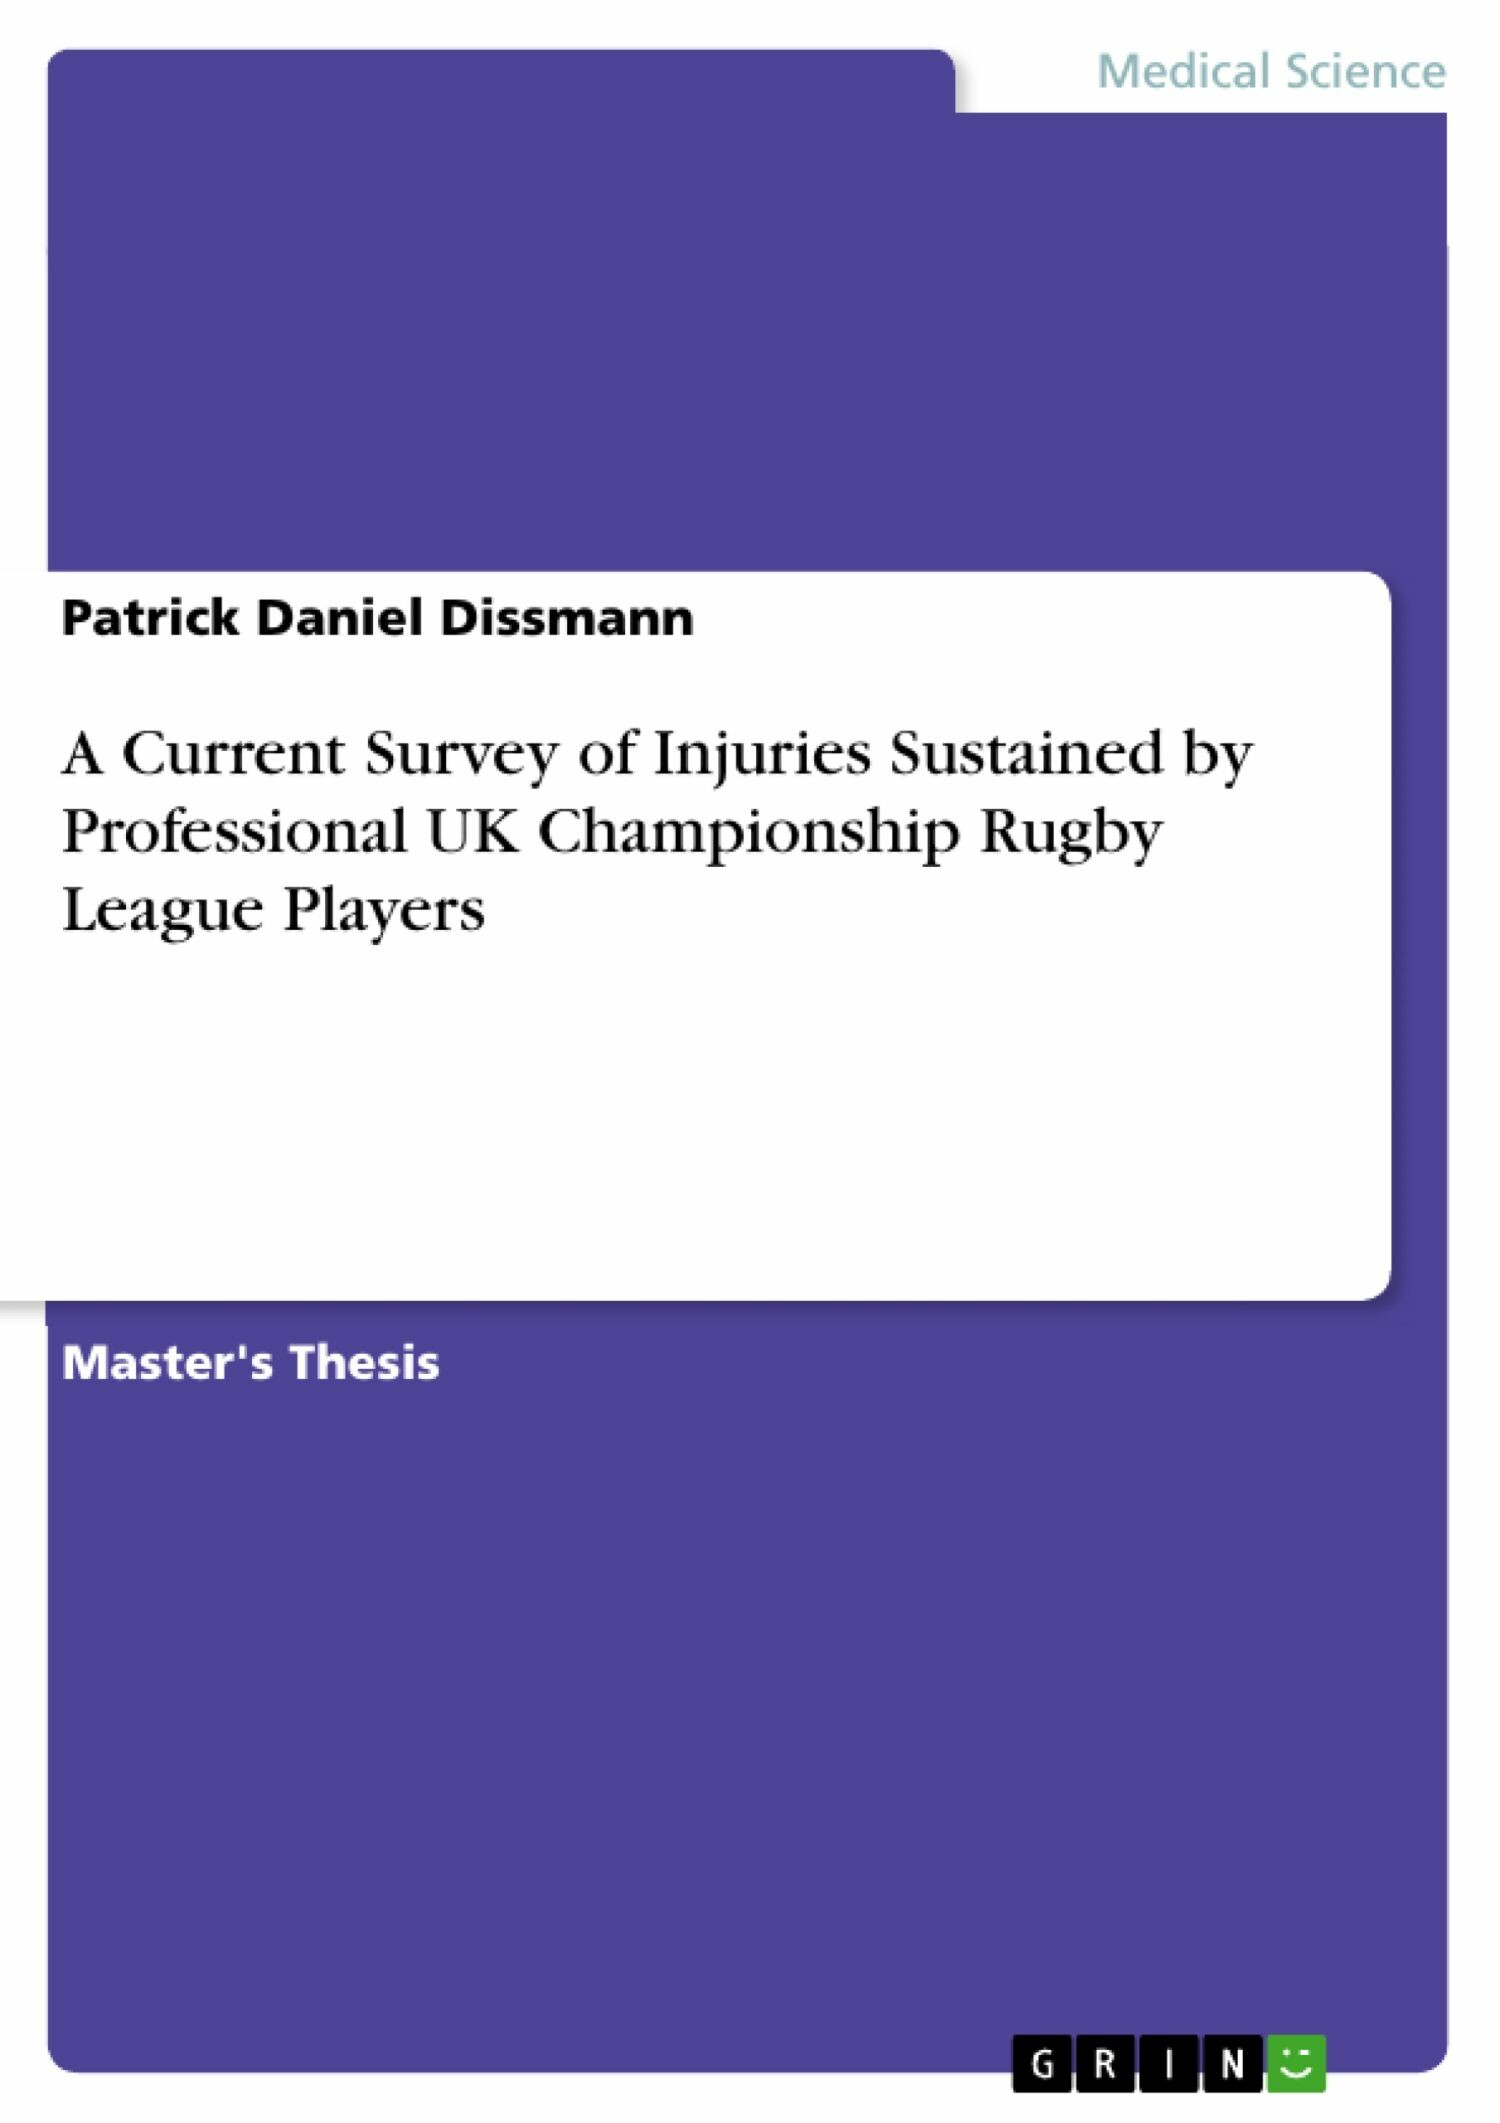 A Current Survey of Injuries Sustained by Professional UK Championship Rugby League Players